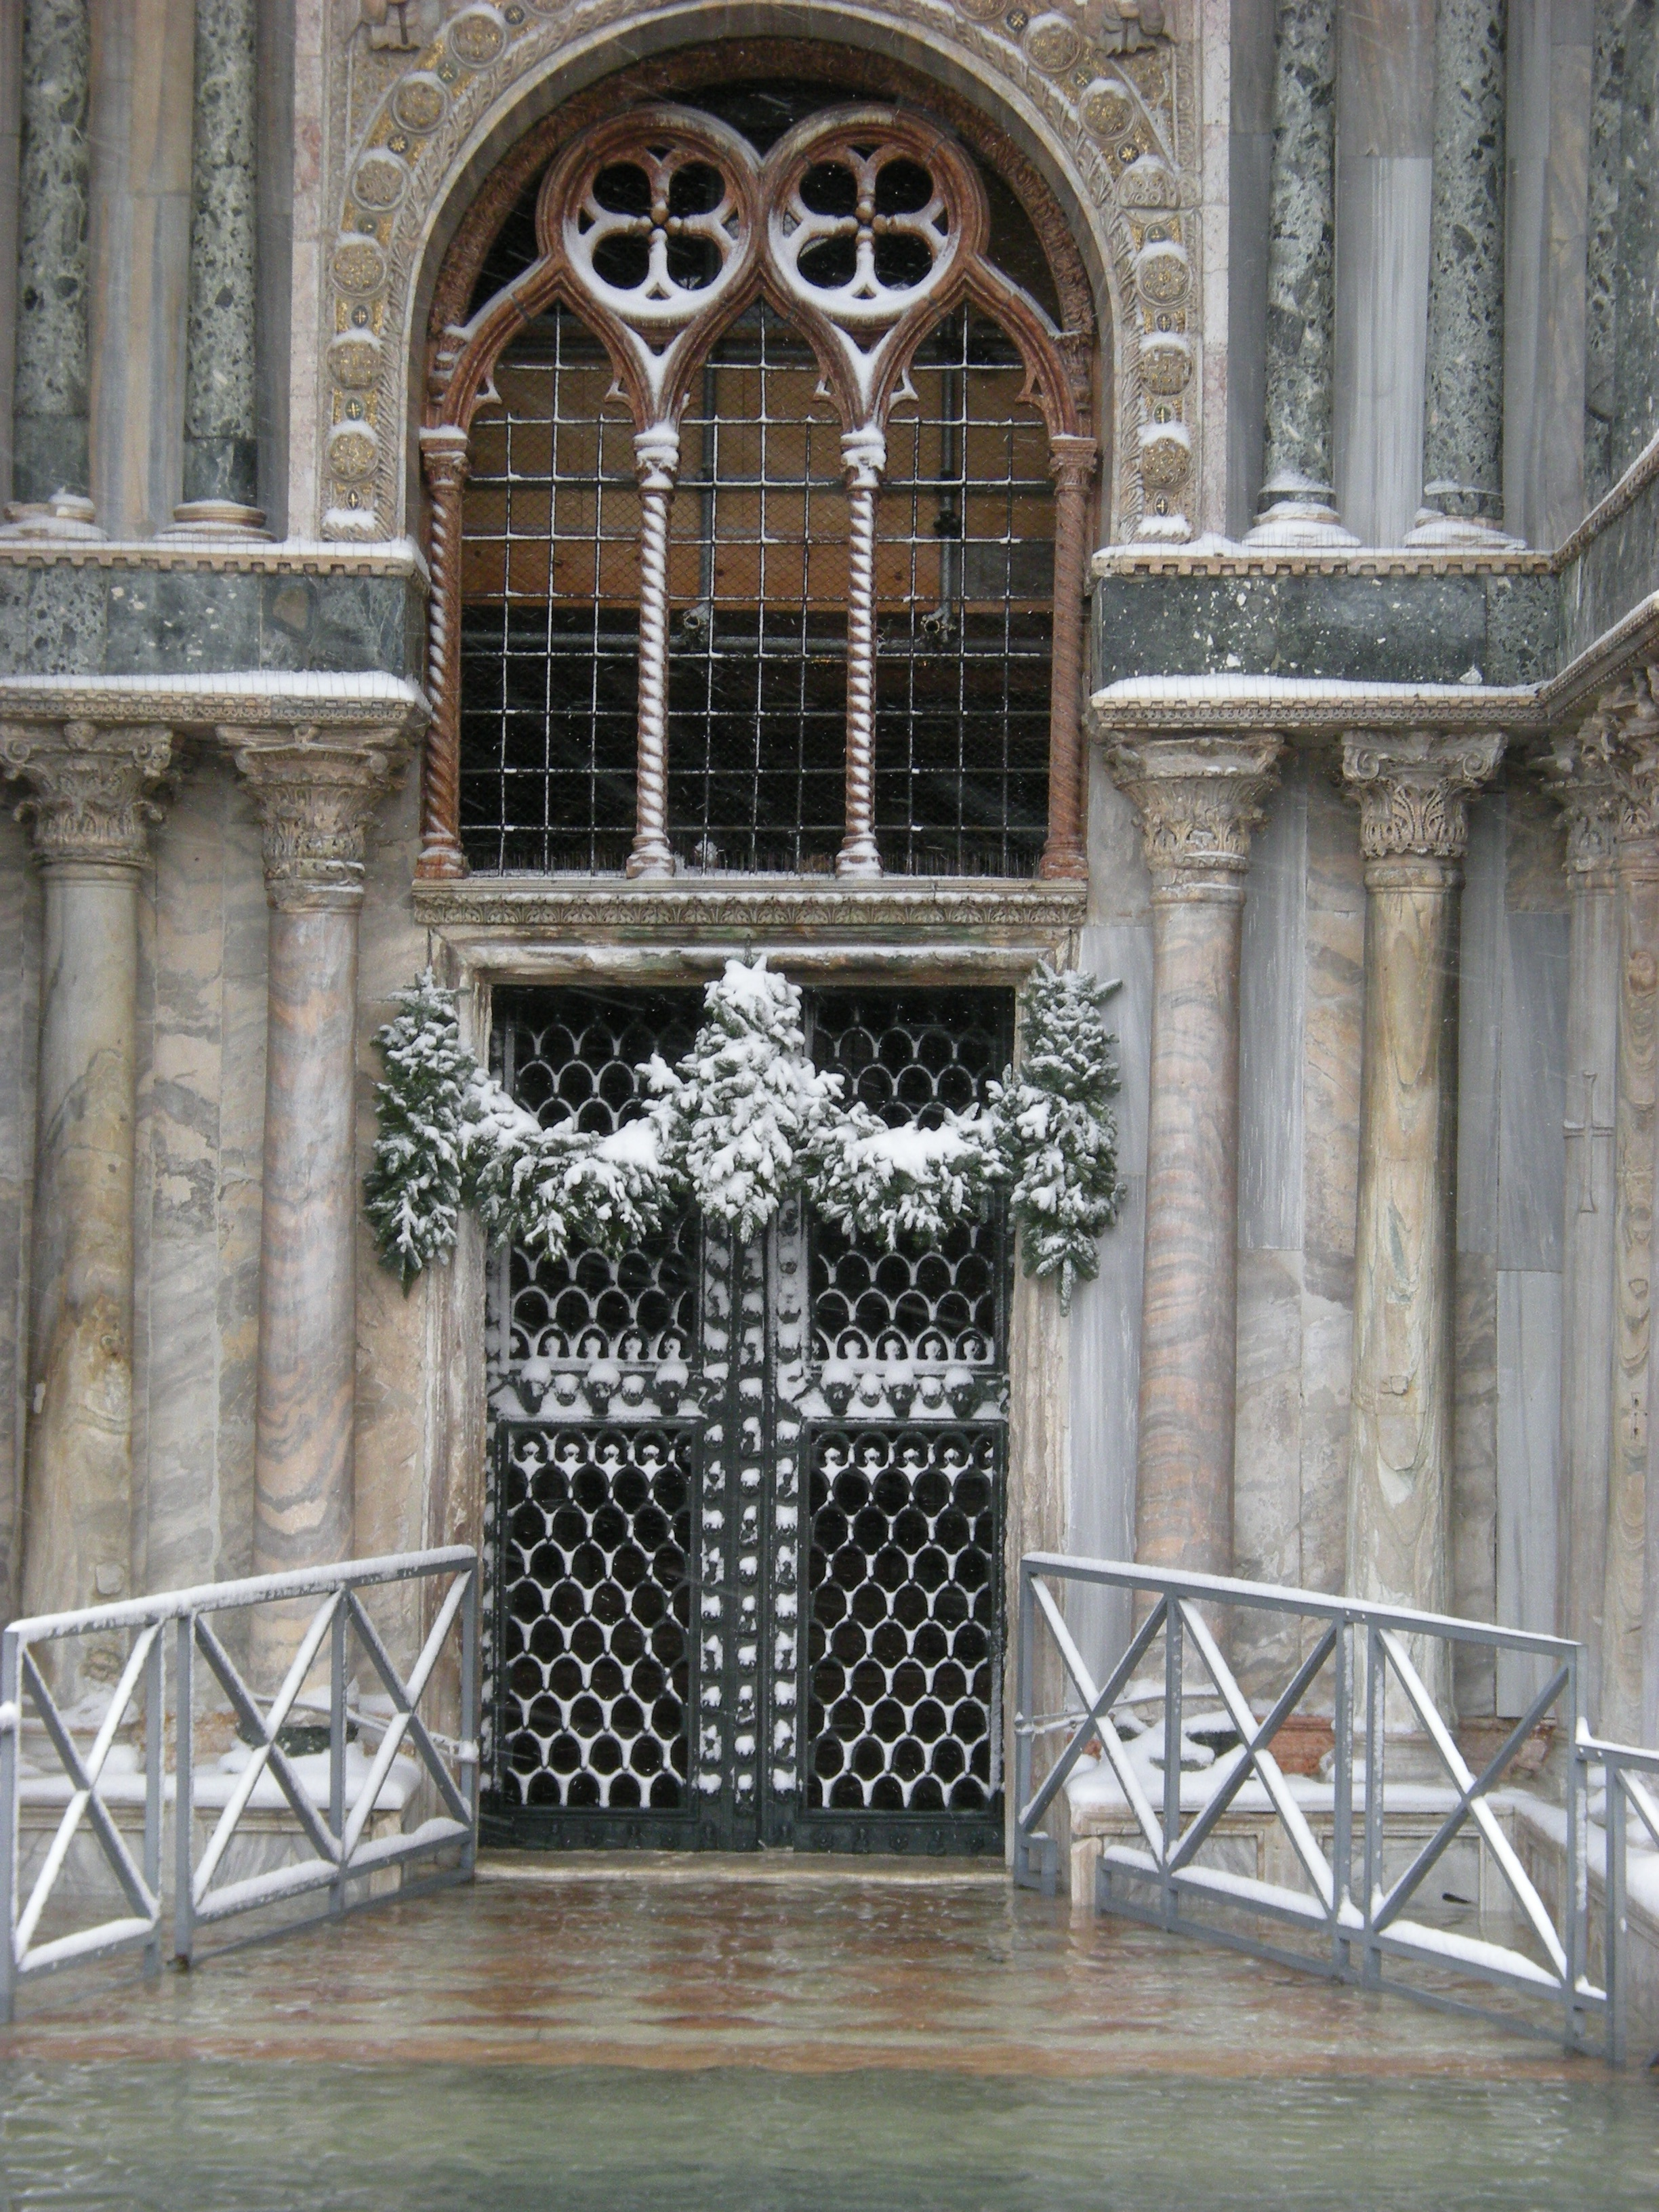 Venetian Church Doors with Snow. Photo © by Pietro deScarpis